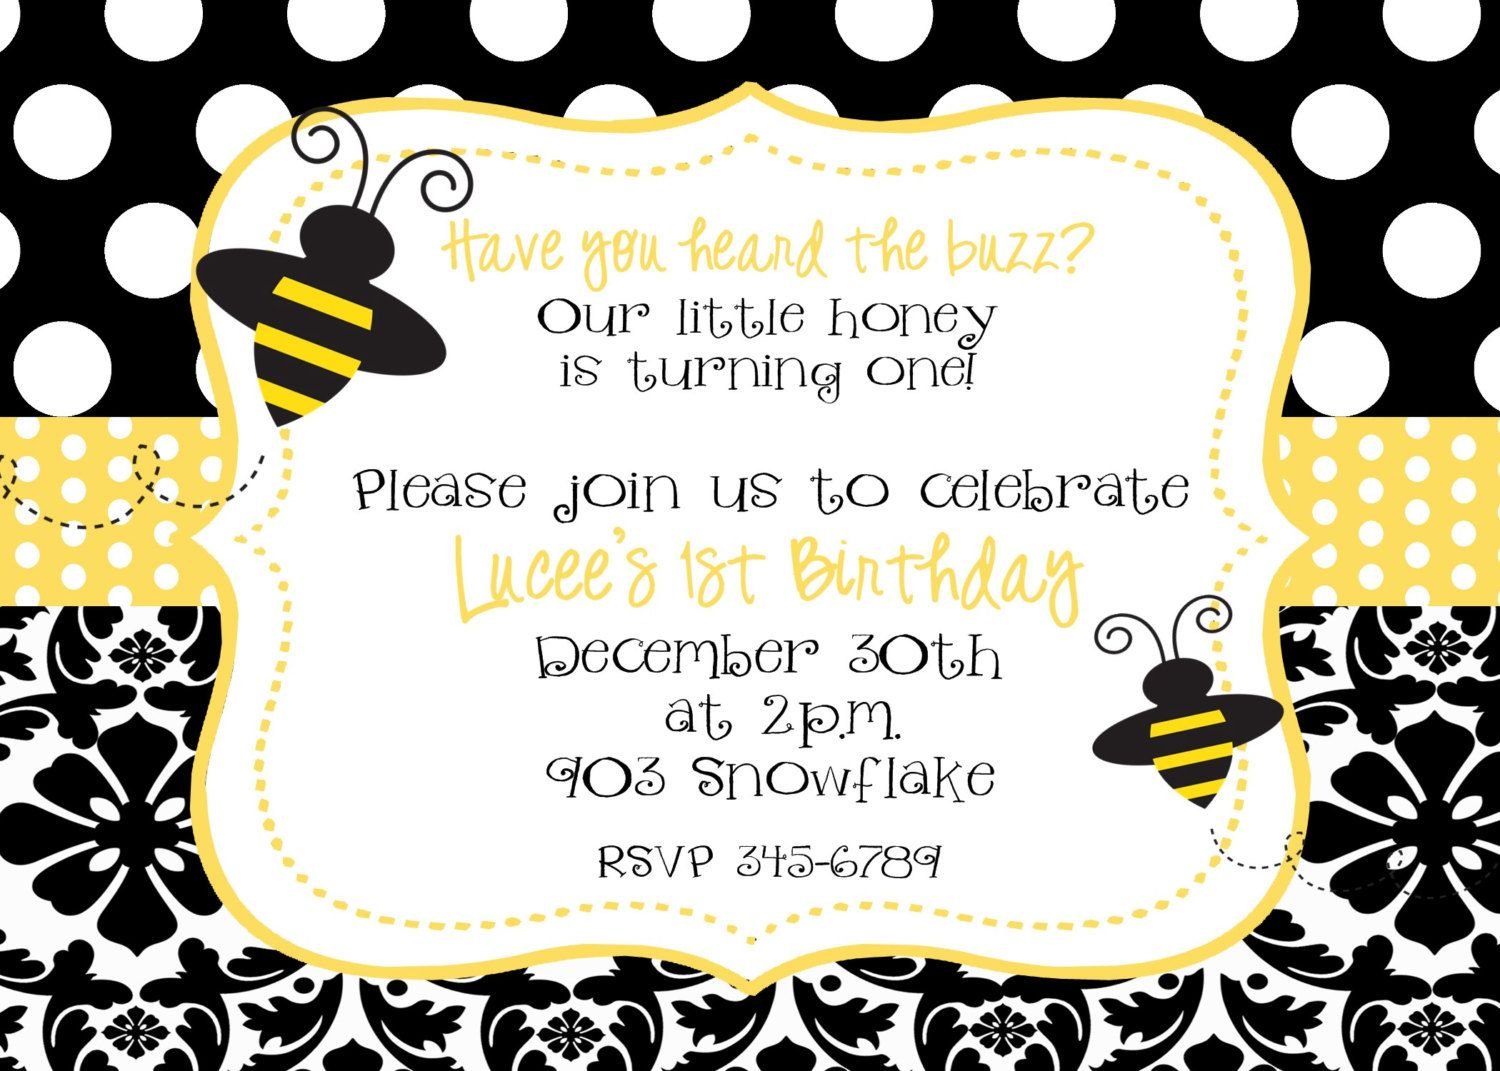 Bumble Bee Birthday Party Or Baby Shower Invitation Digital Printable File 950 Via